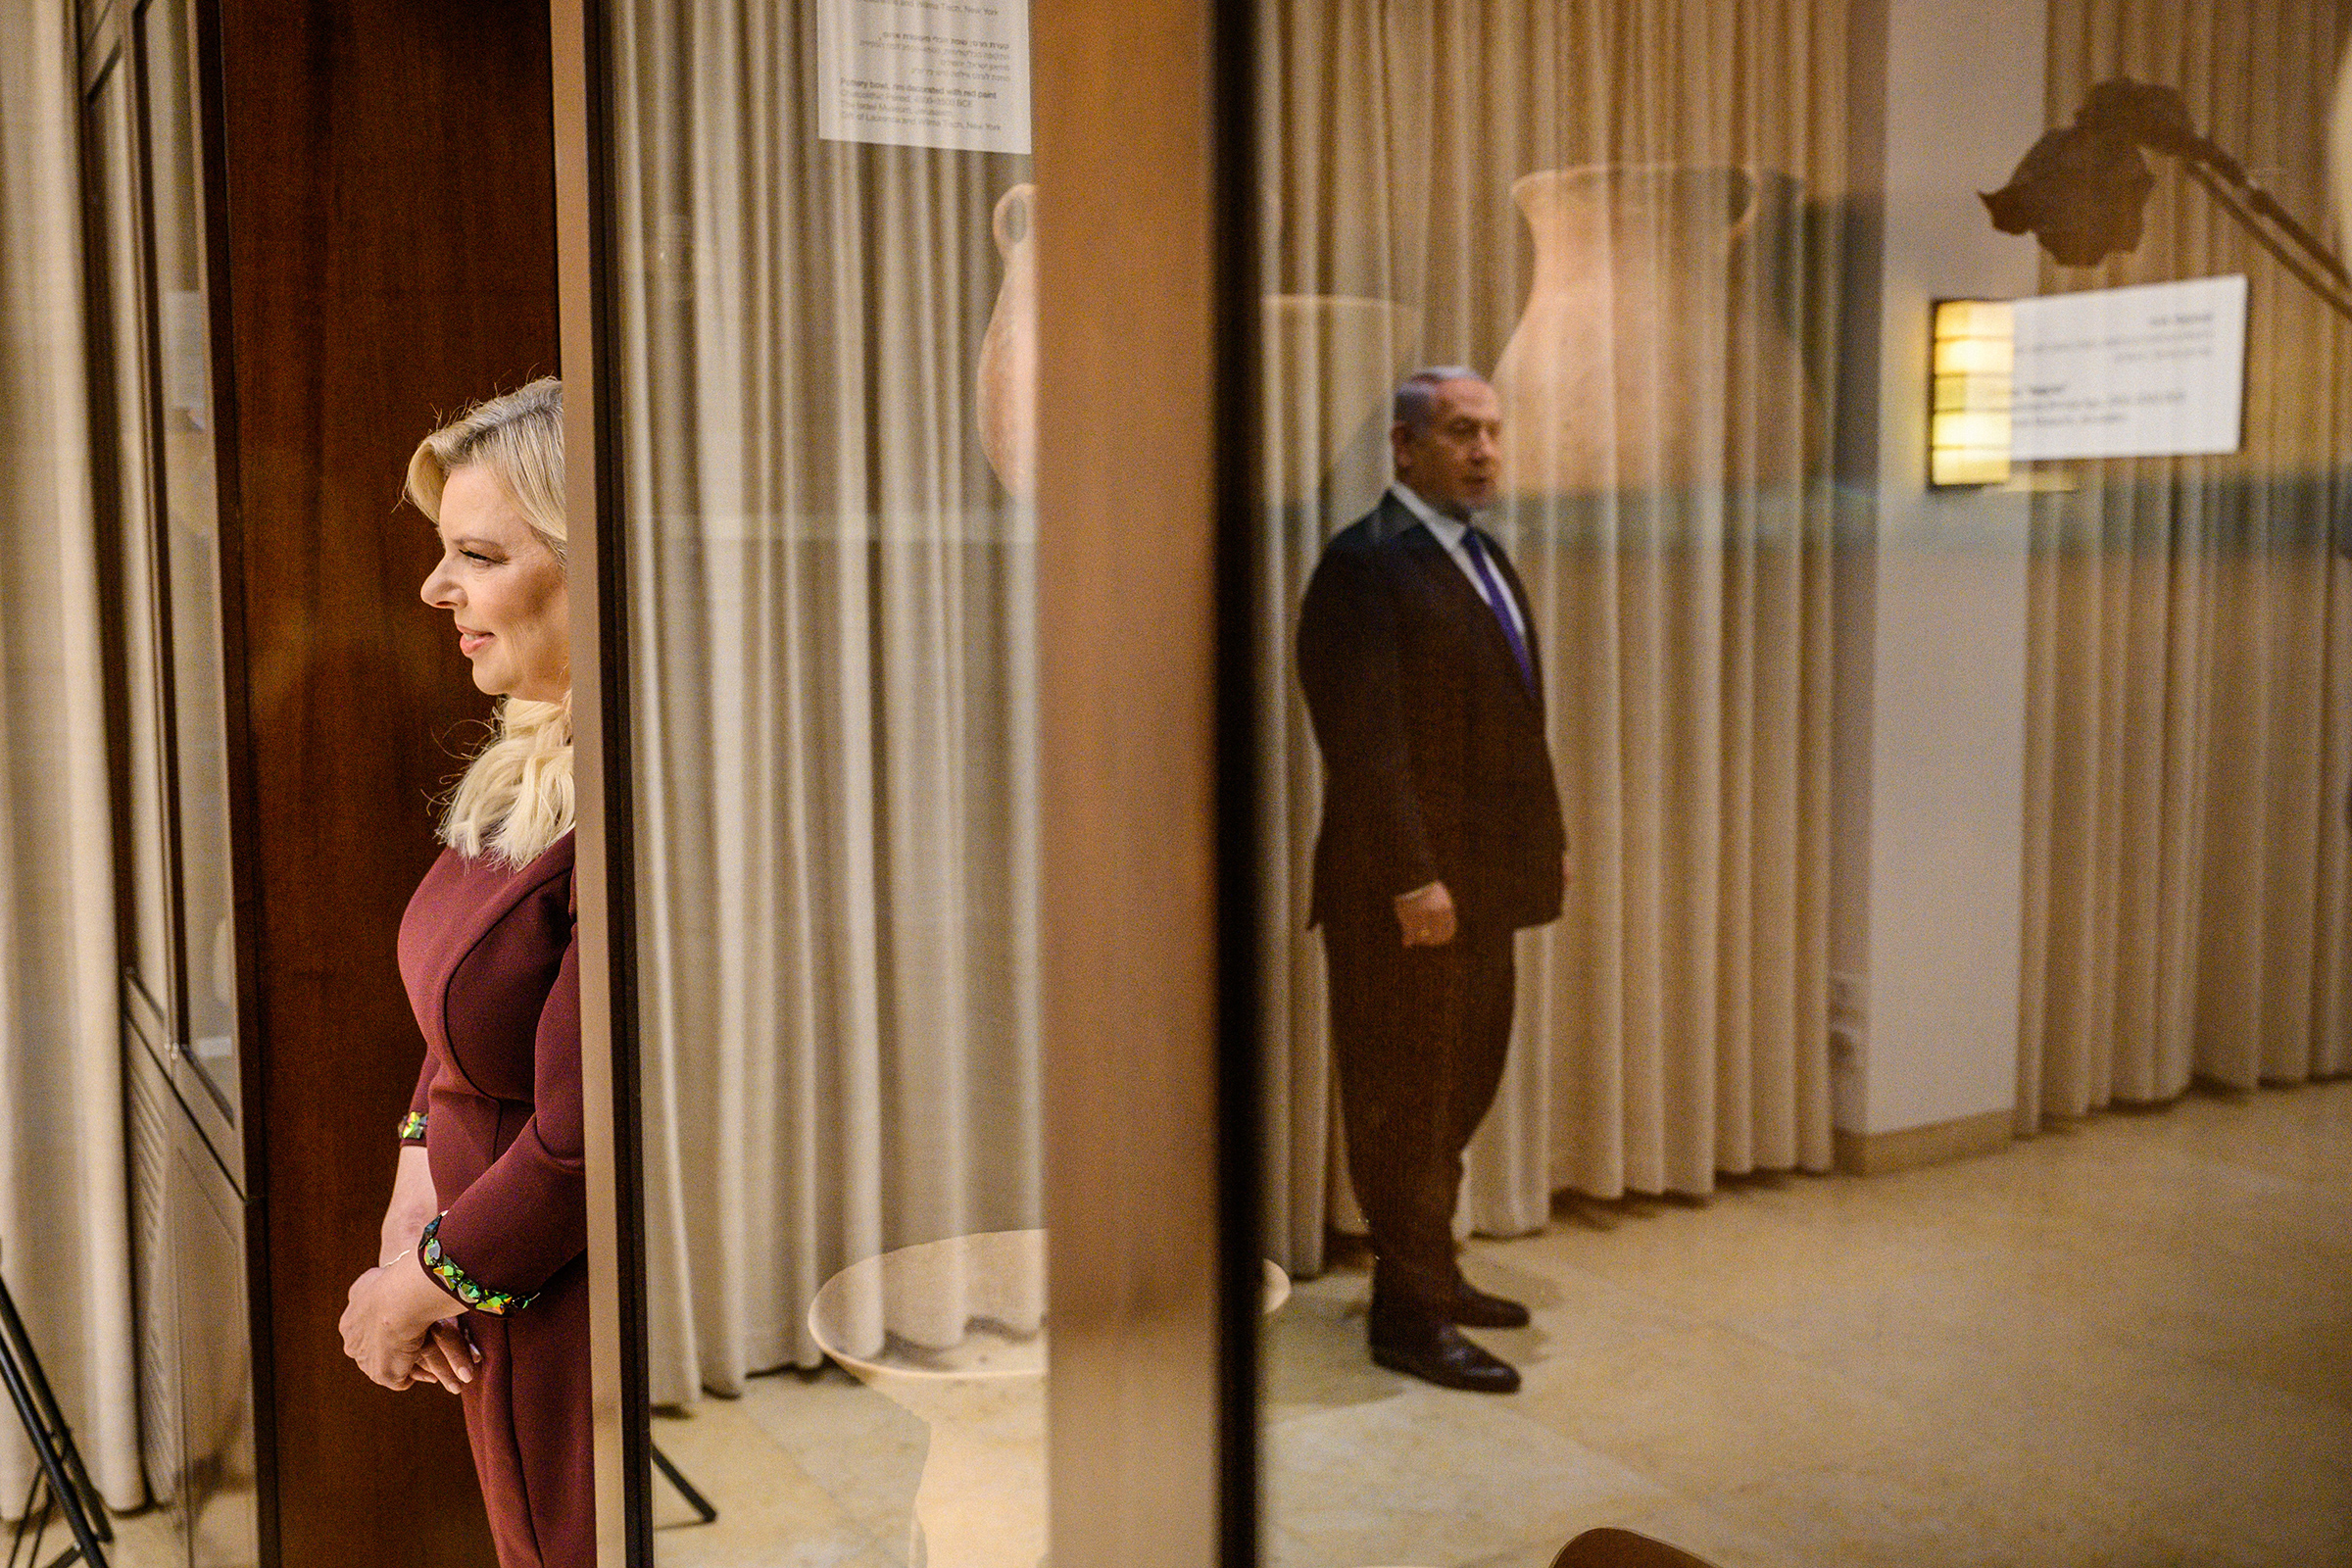 Sara Netanyahu looks on as the Prime Minister stands for a portrait in their residence in Jerusalem.